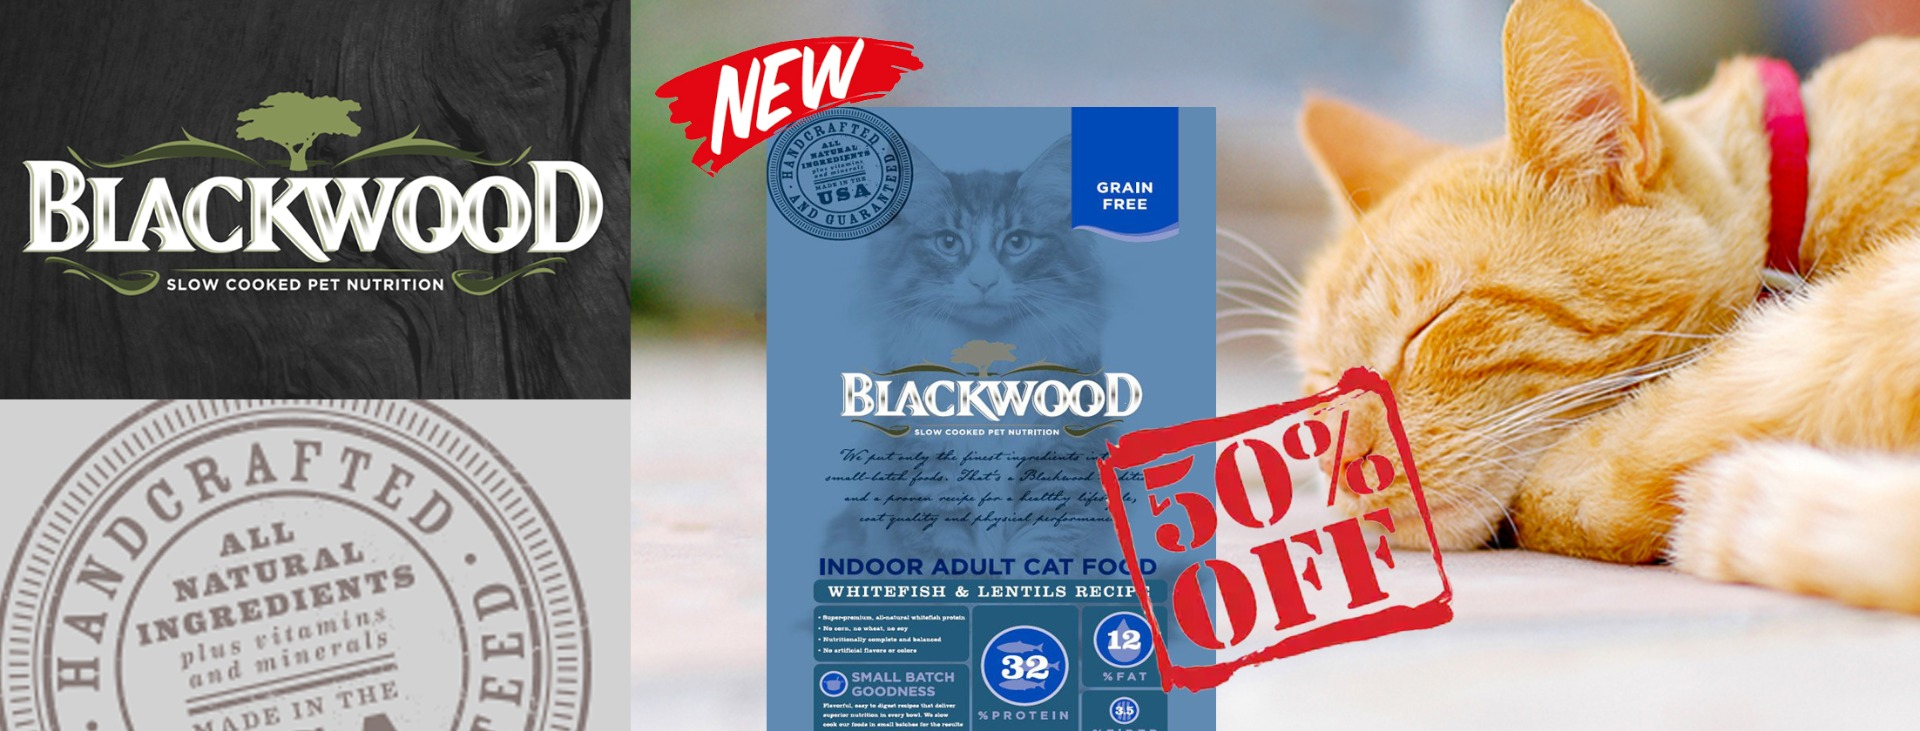 Blackwood cat dry food promotion